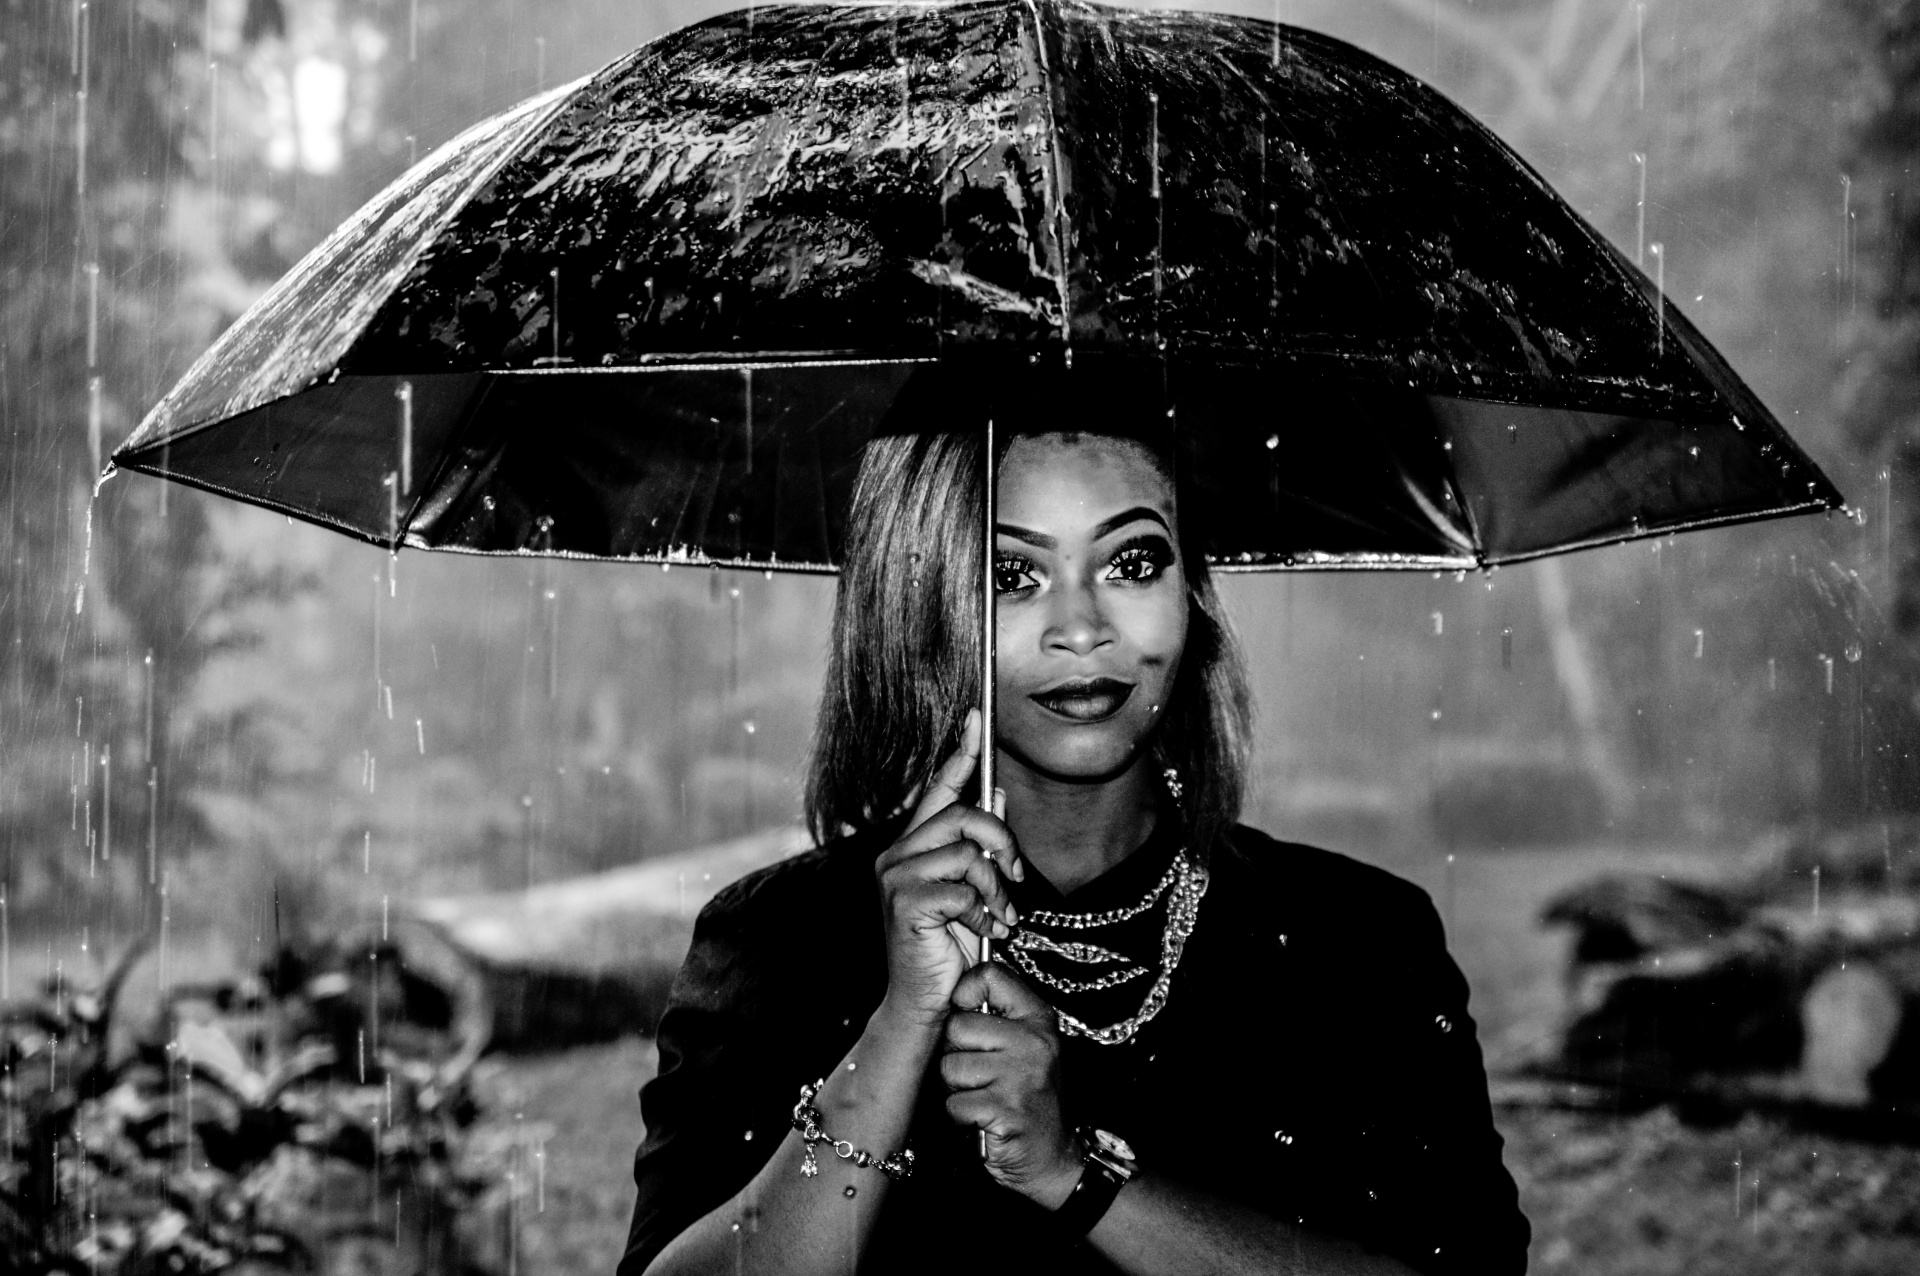 black women under umbrella